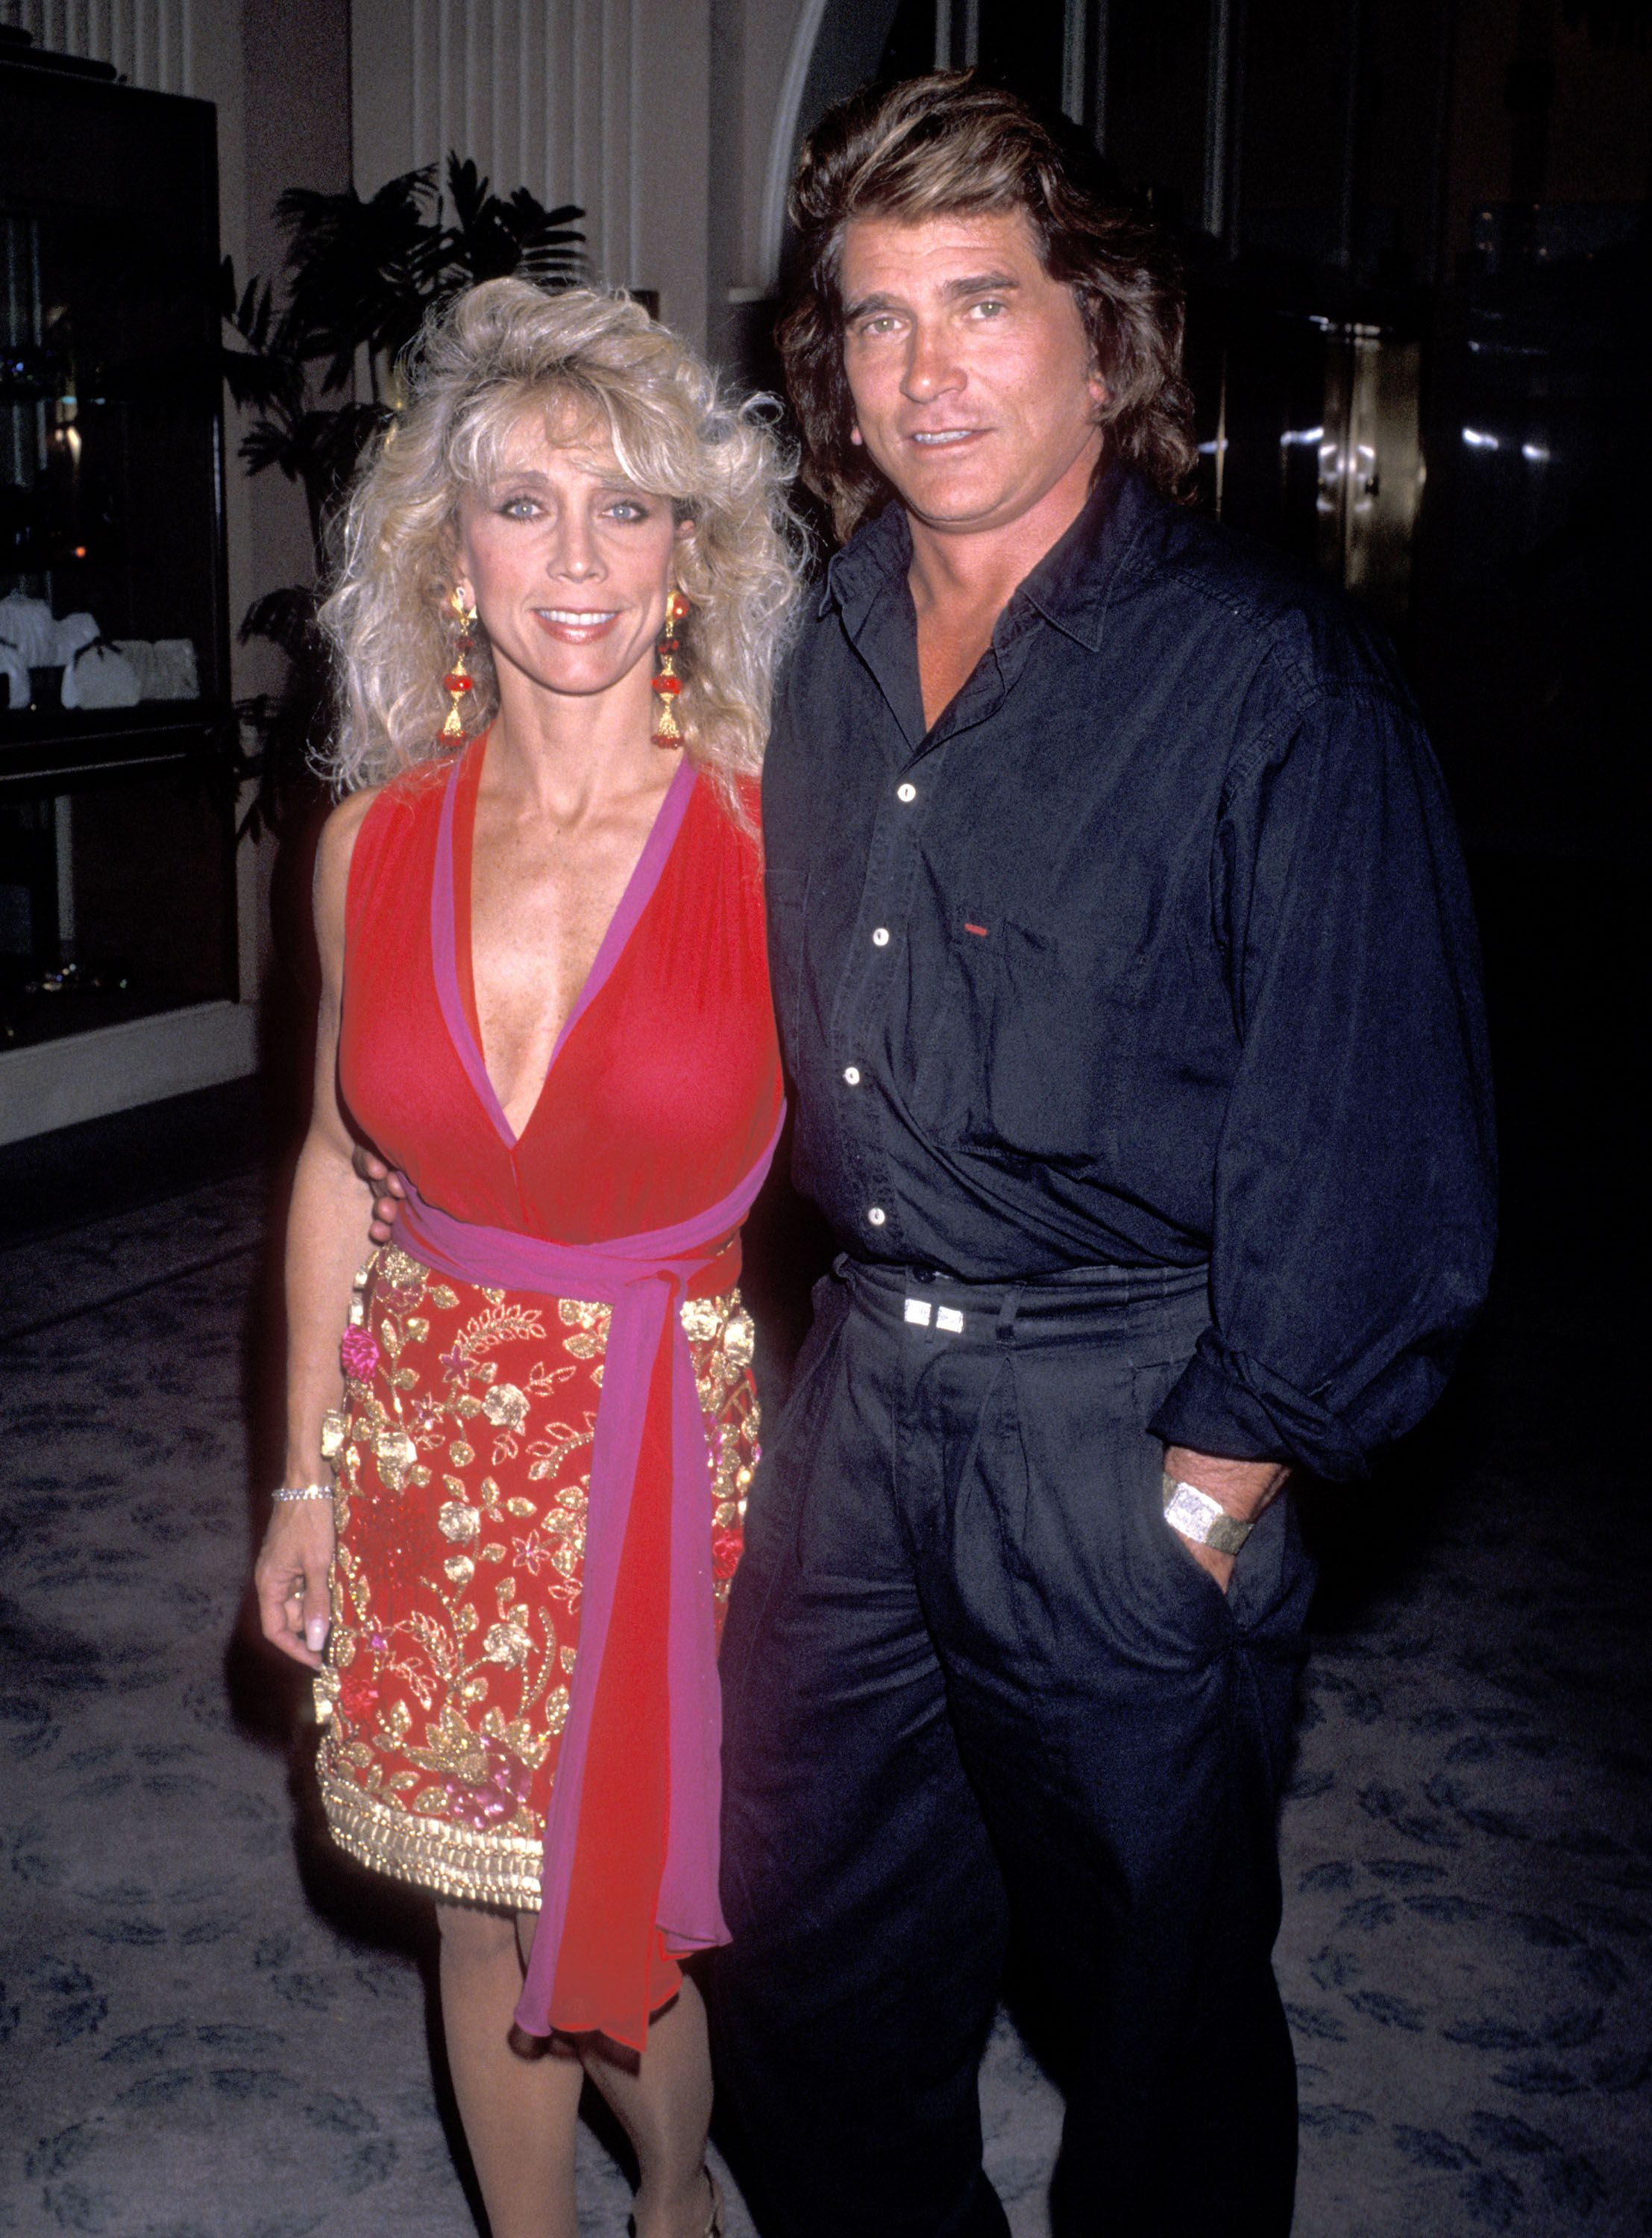 Michael Landon and wife Cindy Landon attend the National Down Syndrome Congress' Third Annual Michael Landon Celebrity Gala on October 20, 1989 at Beverly Hilton Hotel. | Photo: Getty Images.